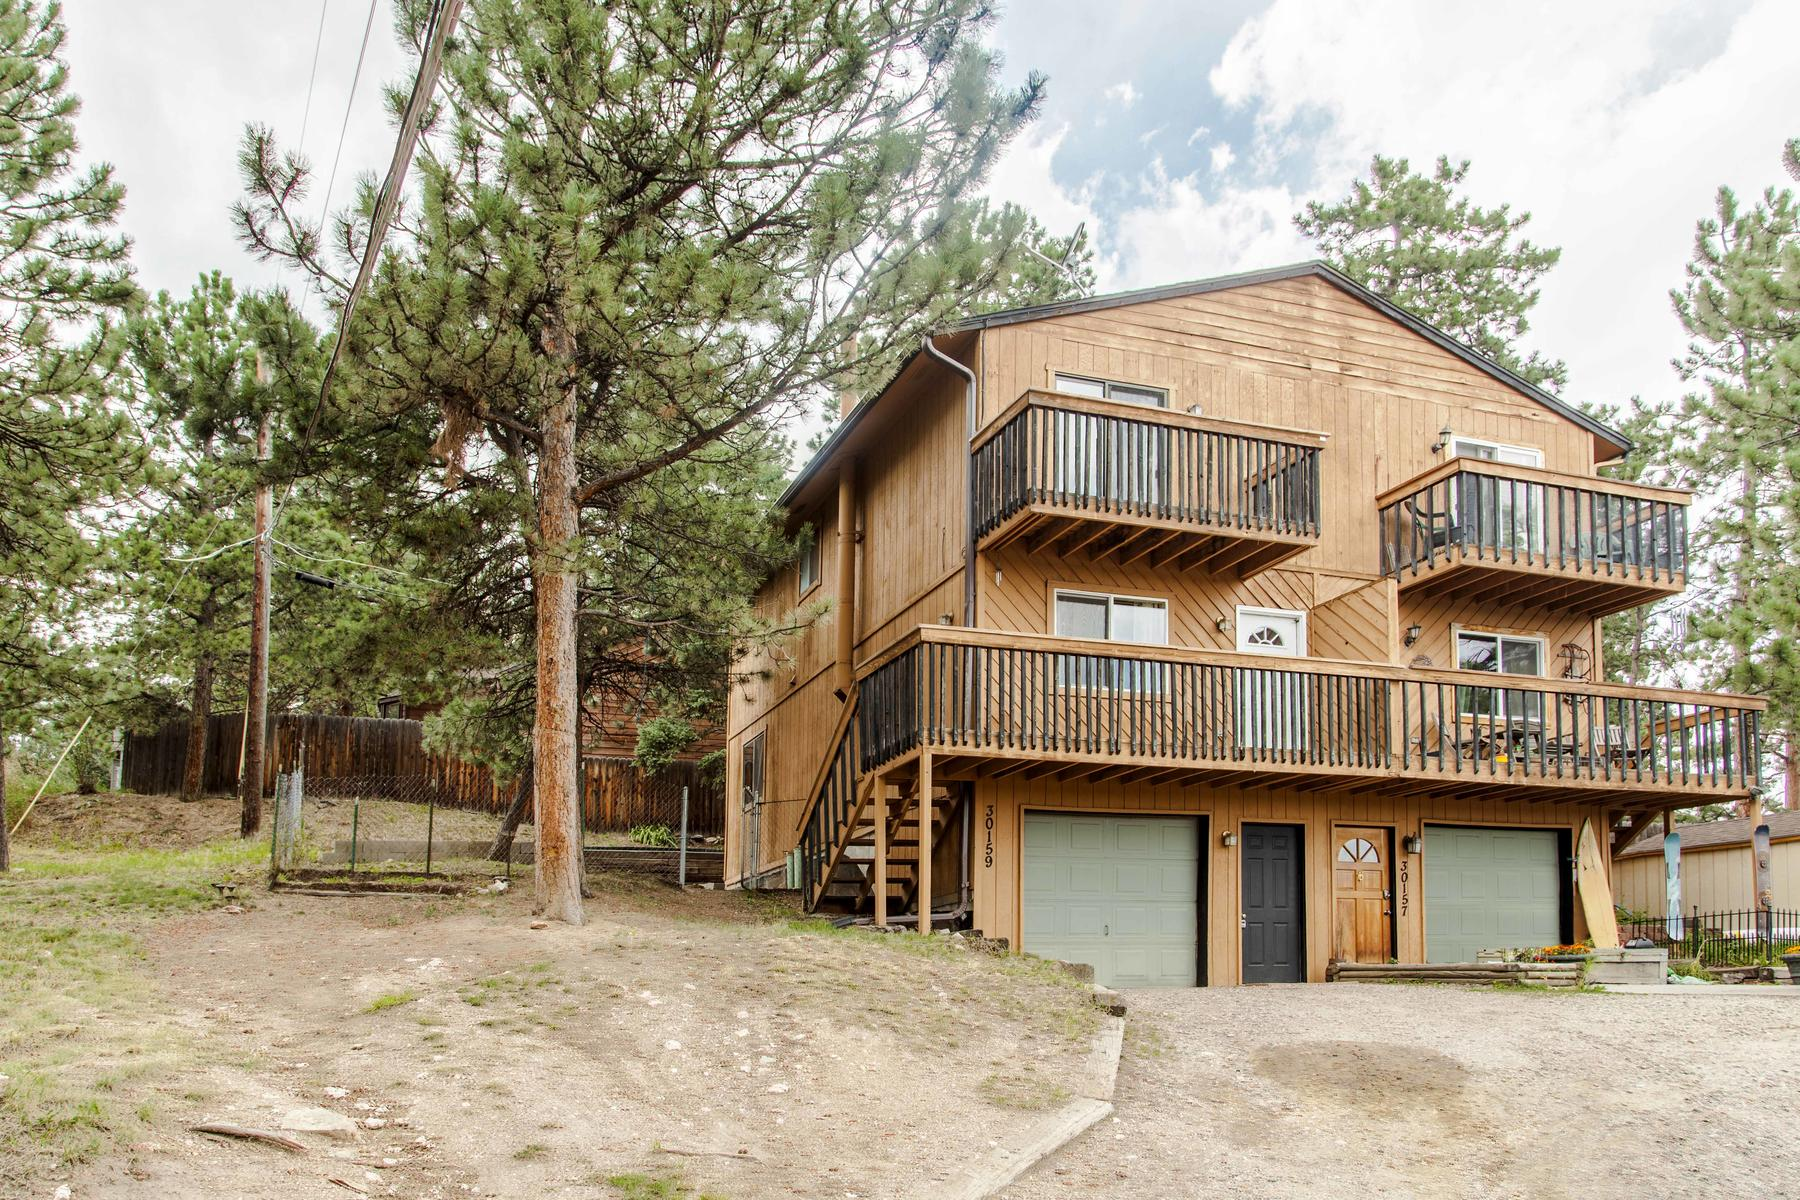 Property for Active at 30159 Aspen Lane 30159 Aspen Lane Evergreen, Colorado 80439 United States